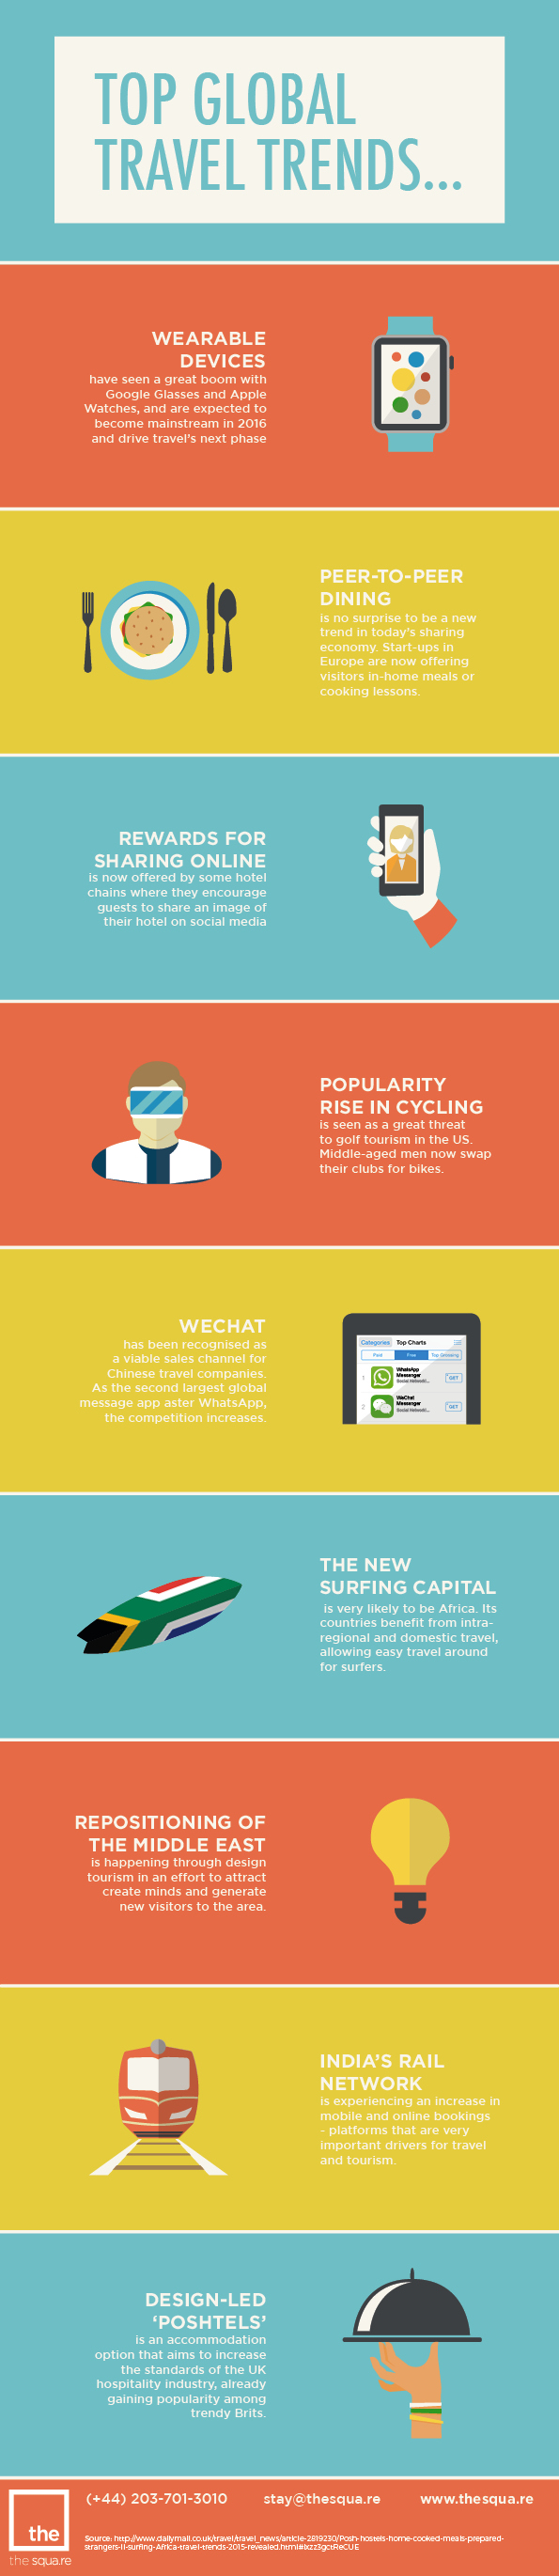 2015 Travel trends infographic